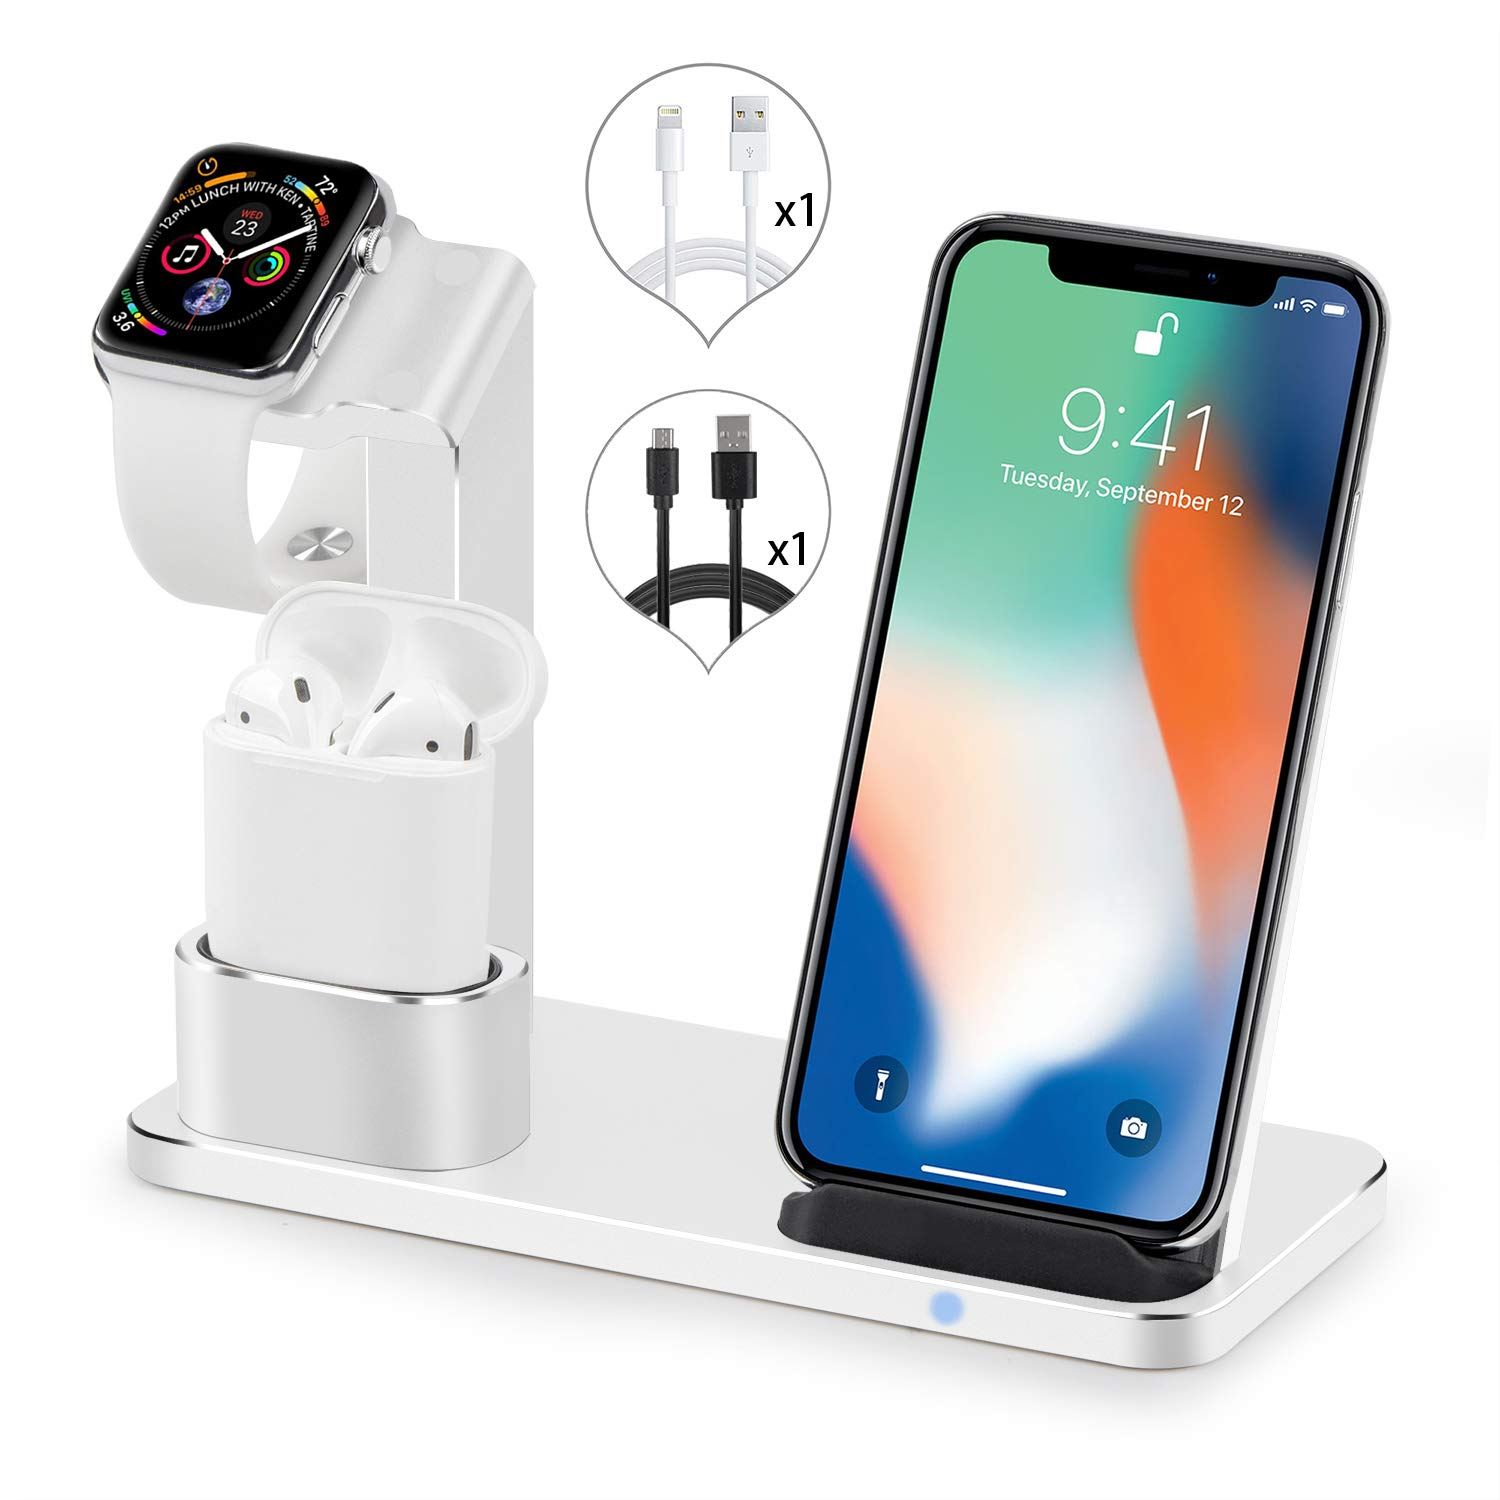 SENZLE Watch Stand Wireless Charger,3 in 1 Aluminum Fast Wireless Charger Charging Stand Dock Station for iPhone X/XS Max/Xr/8/8+/ iWatch Series 4/3/2/1/ Airpods【iWatch Charge Cable unincluded】-Silver